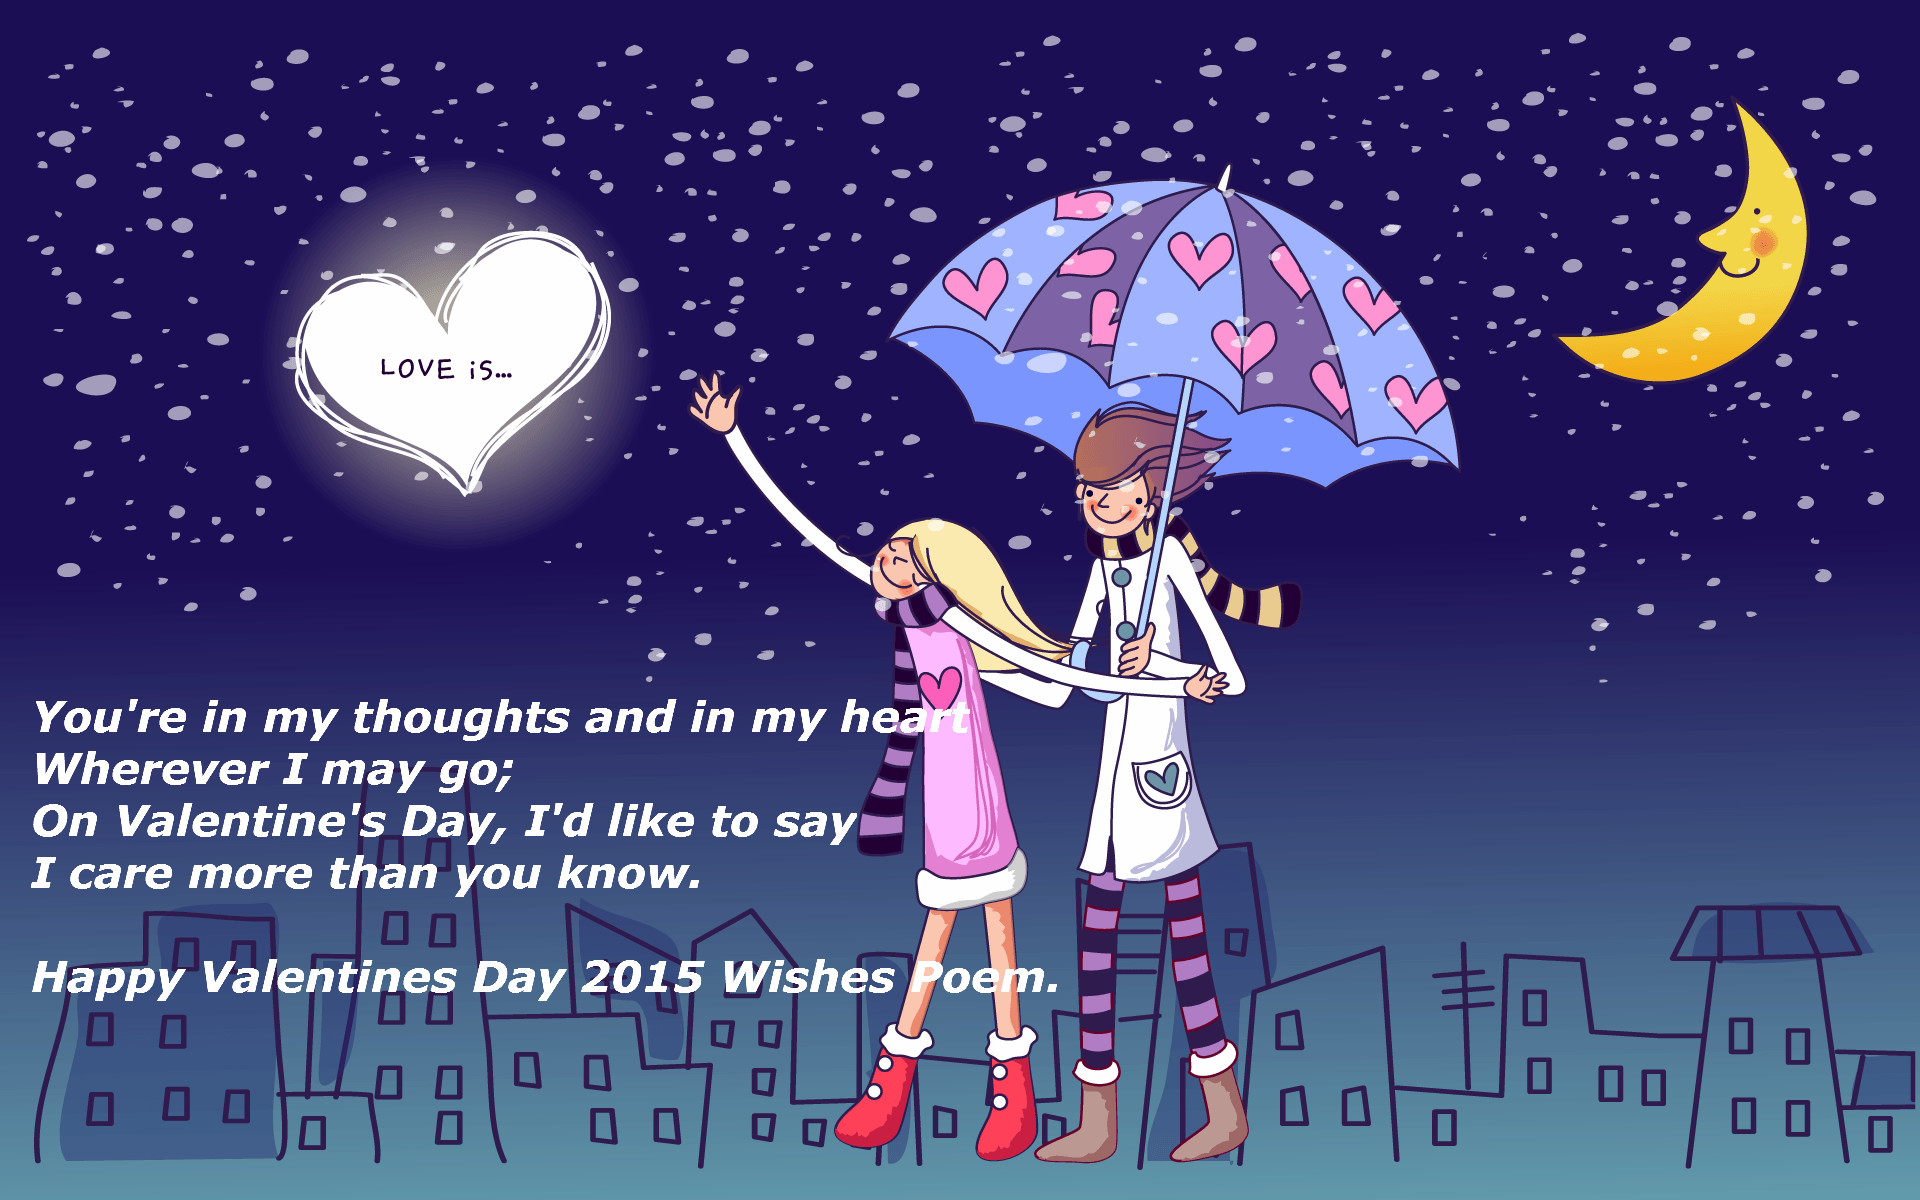 1920x1200 Happy Valentines Day Poem Wallpaper 2015| Happy Valentines Day .